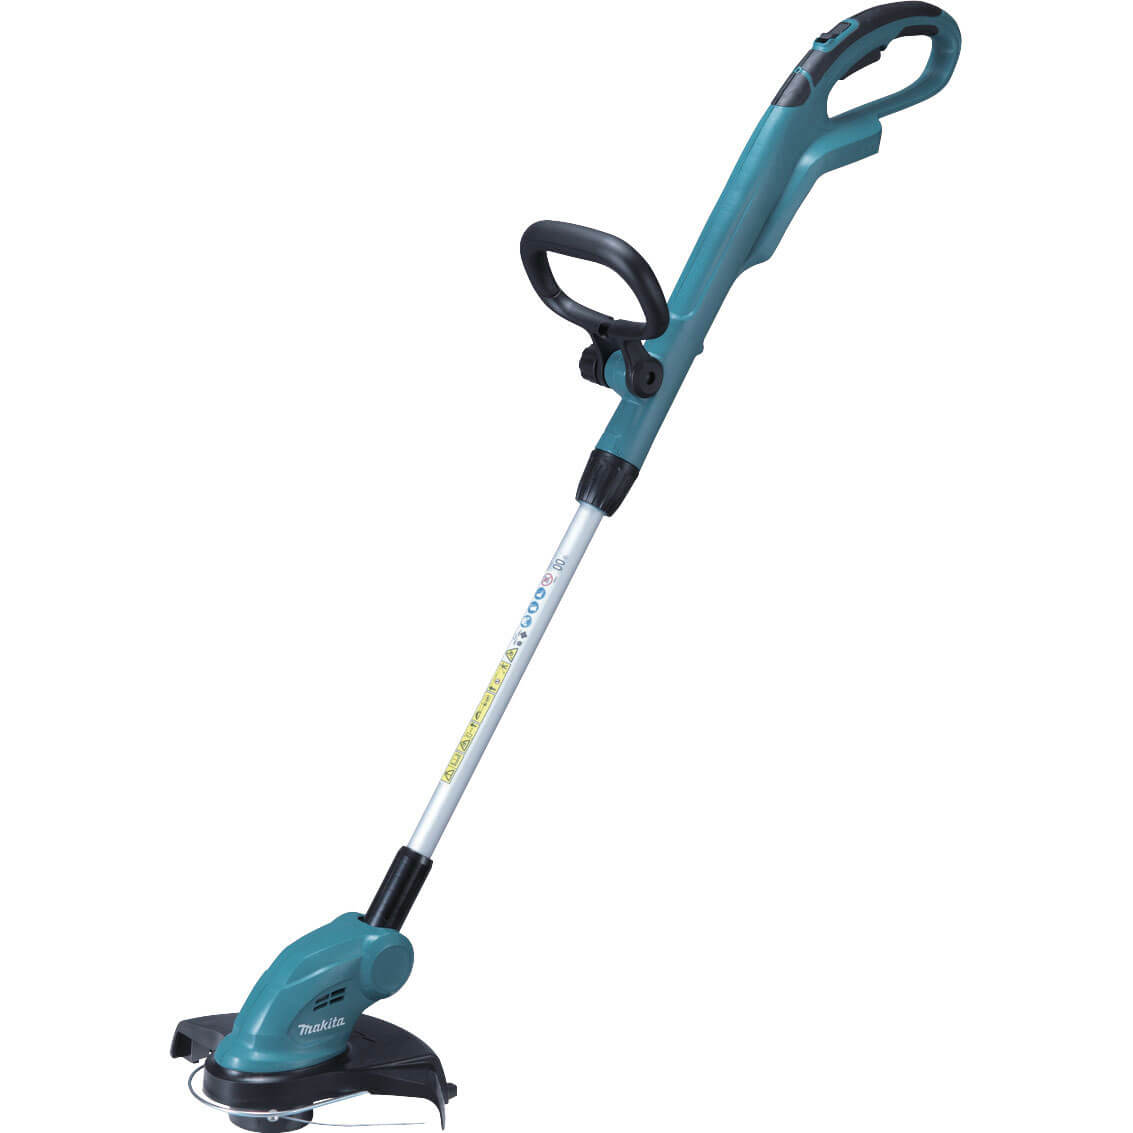 Makita DUR181Z 18v Cordless LXT Grass Trimmer without Battery or Charger